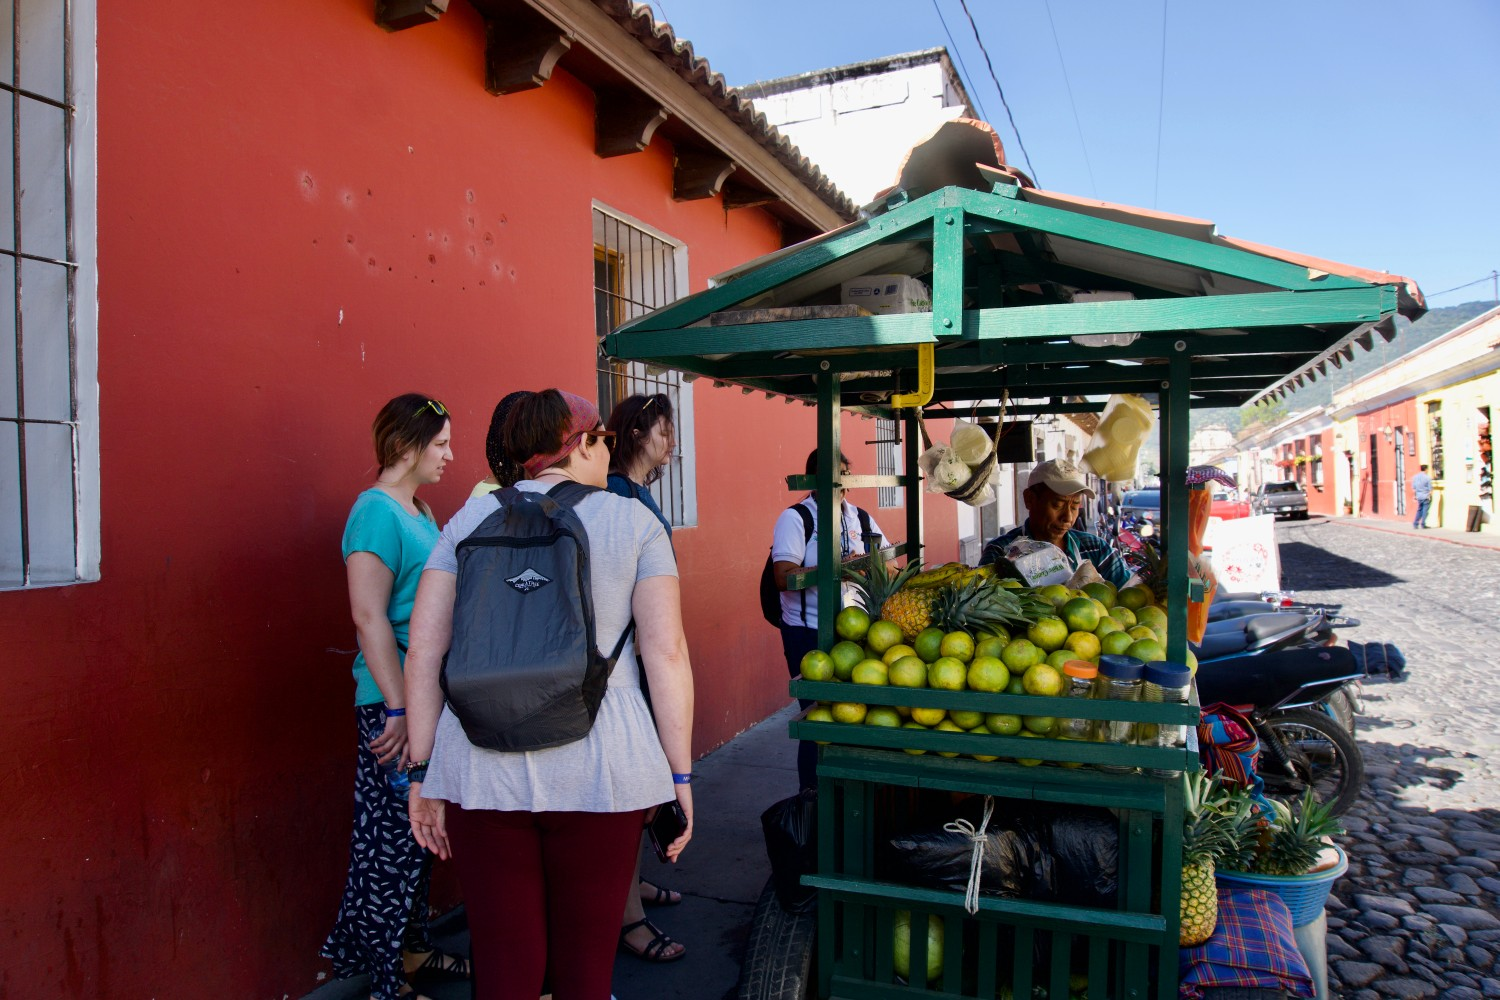 Tourists standing at a market stall in Guatemala